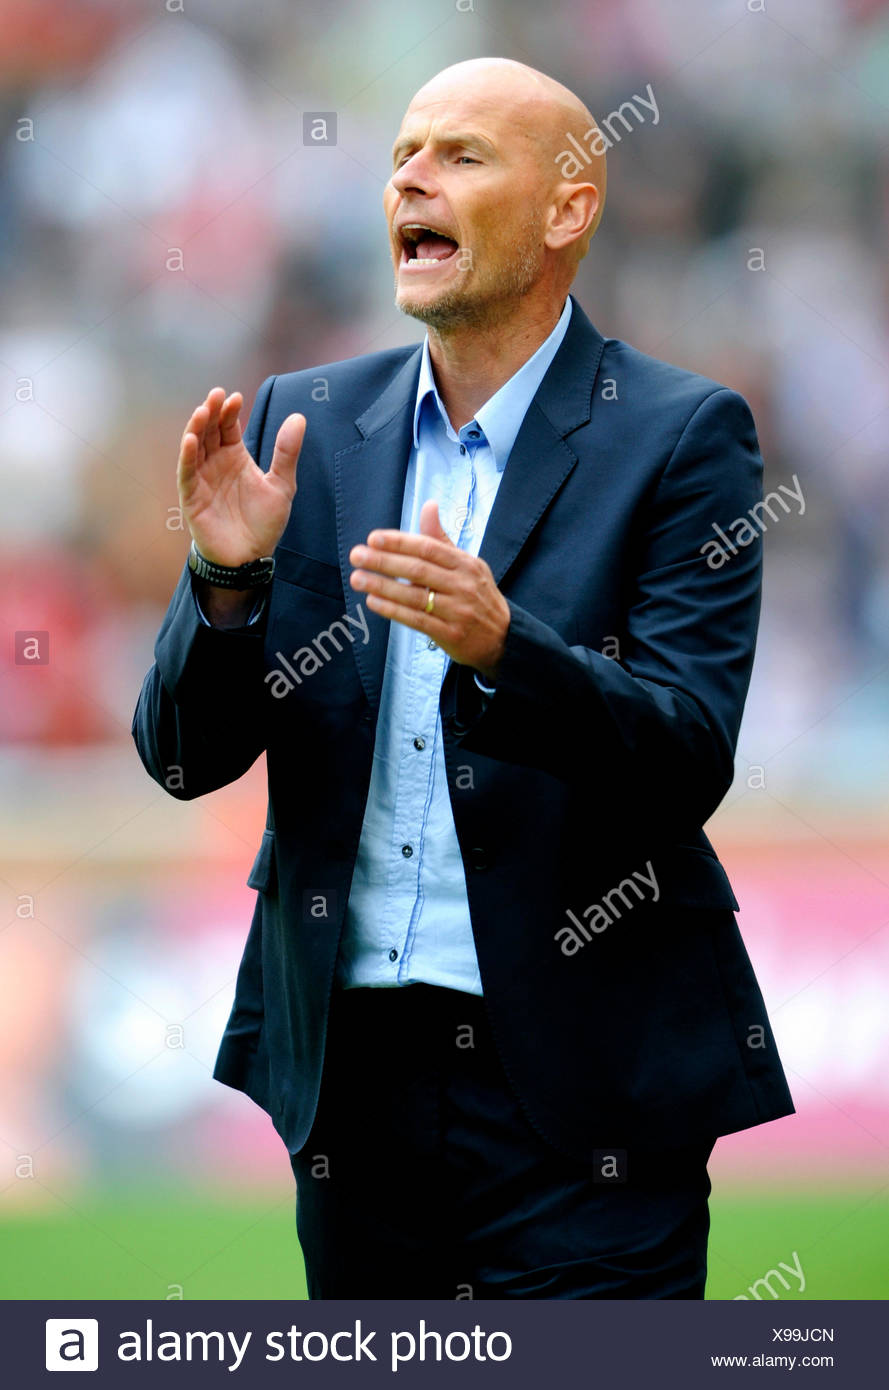 Stale Solbakken, manager of FC Cologne during football test match between FC Cologne 1-2 Arsenal, Rhein-Energie-Stadion, Cologne - Stock Image